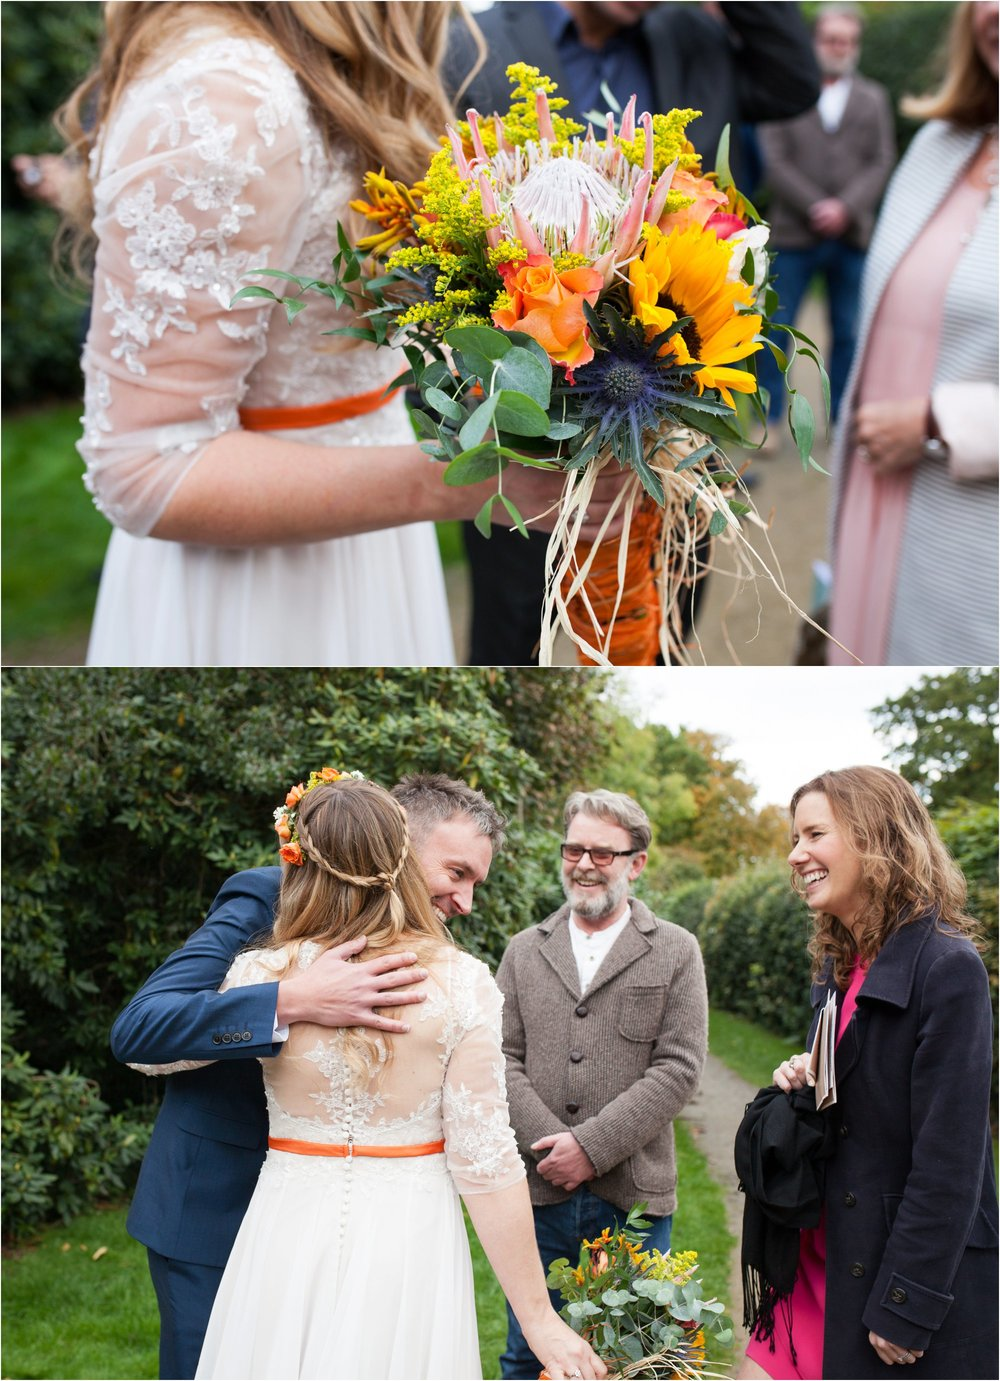 Styal_Wedding_Wilmslow_Cheshire_Autumn_Colourful_photography_0099.jpg